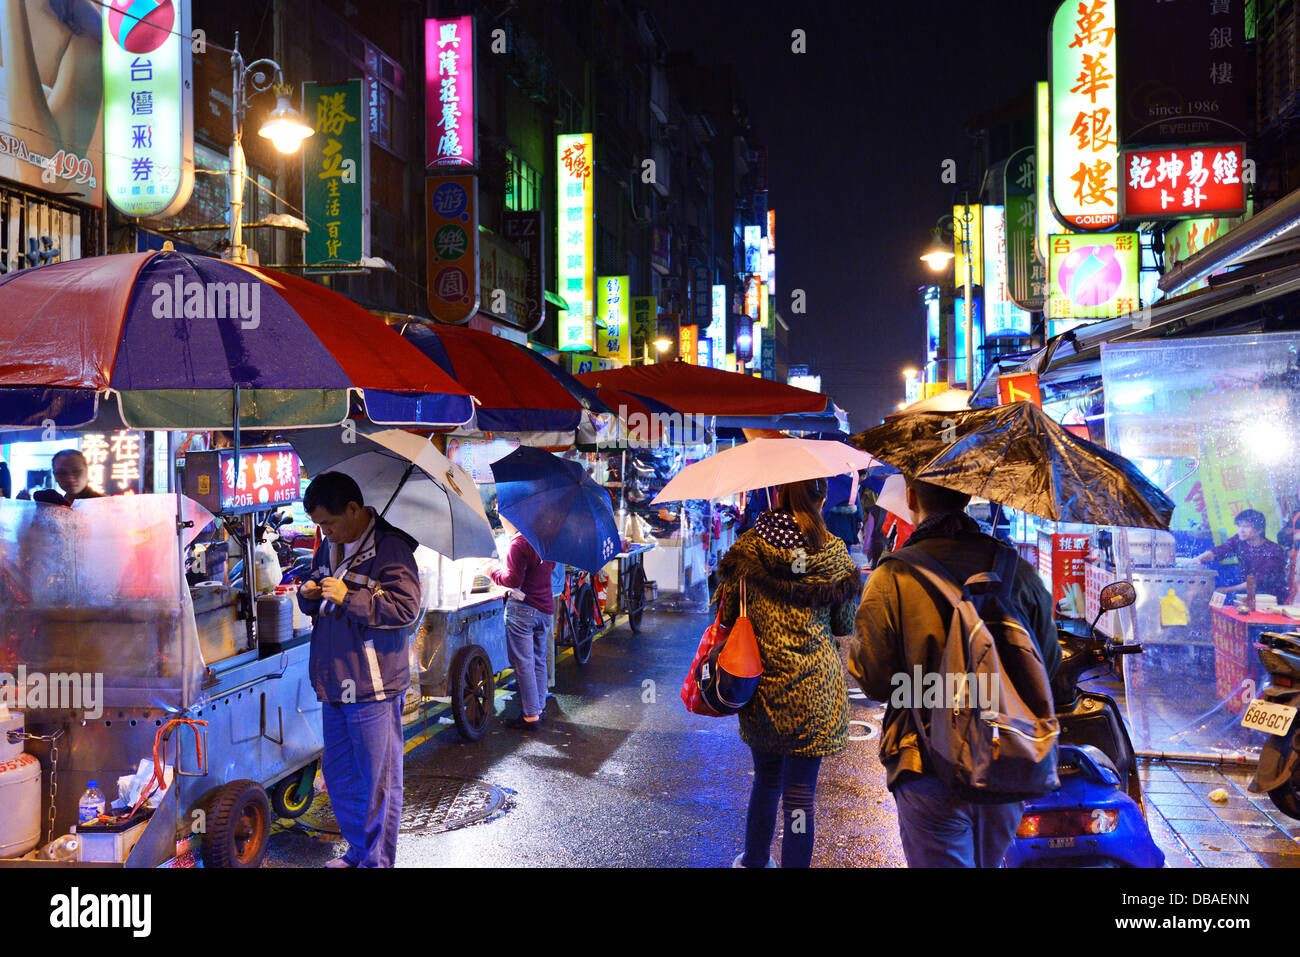 Night Market in Taipei, Taiwan. - Stock Image